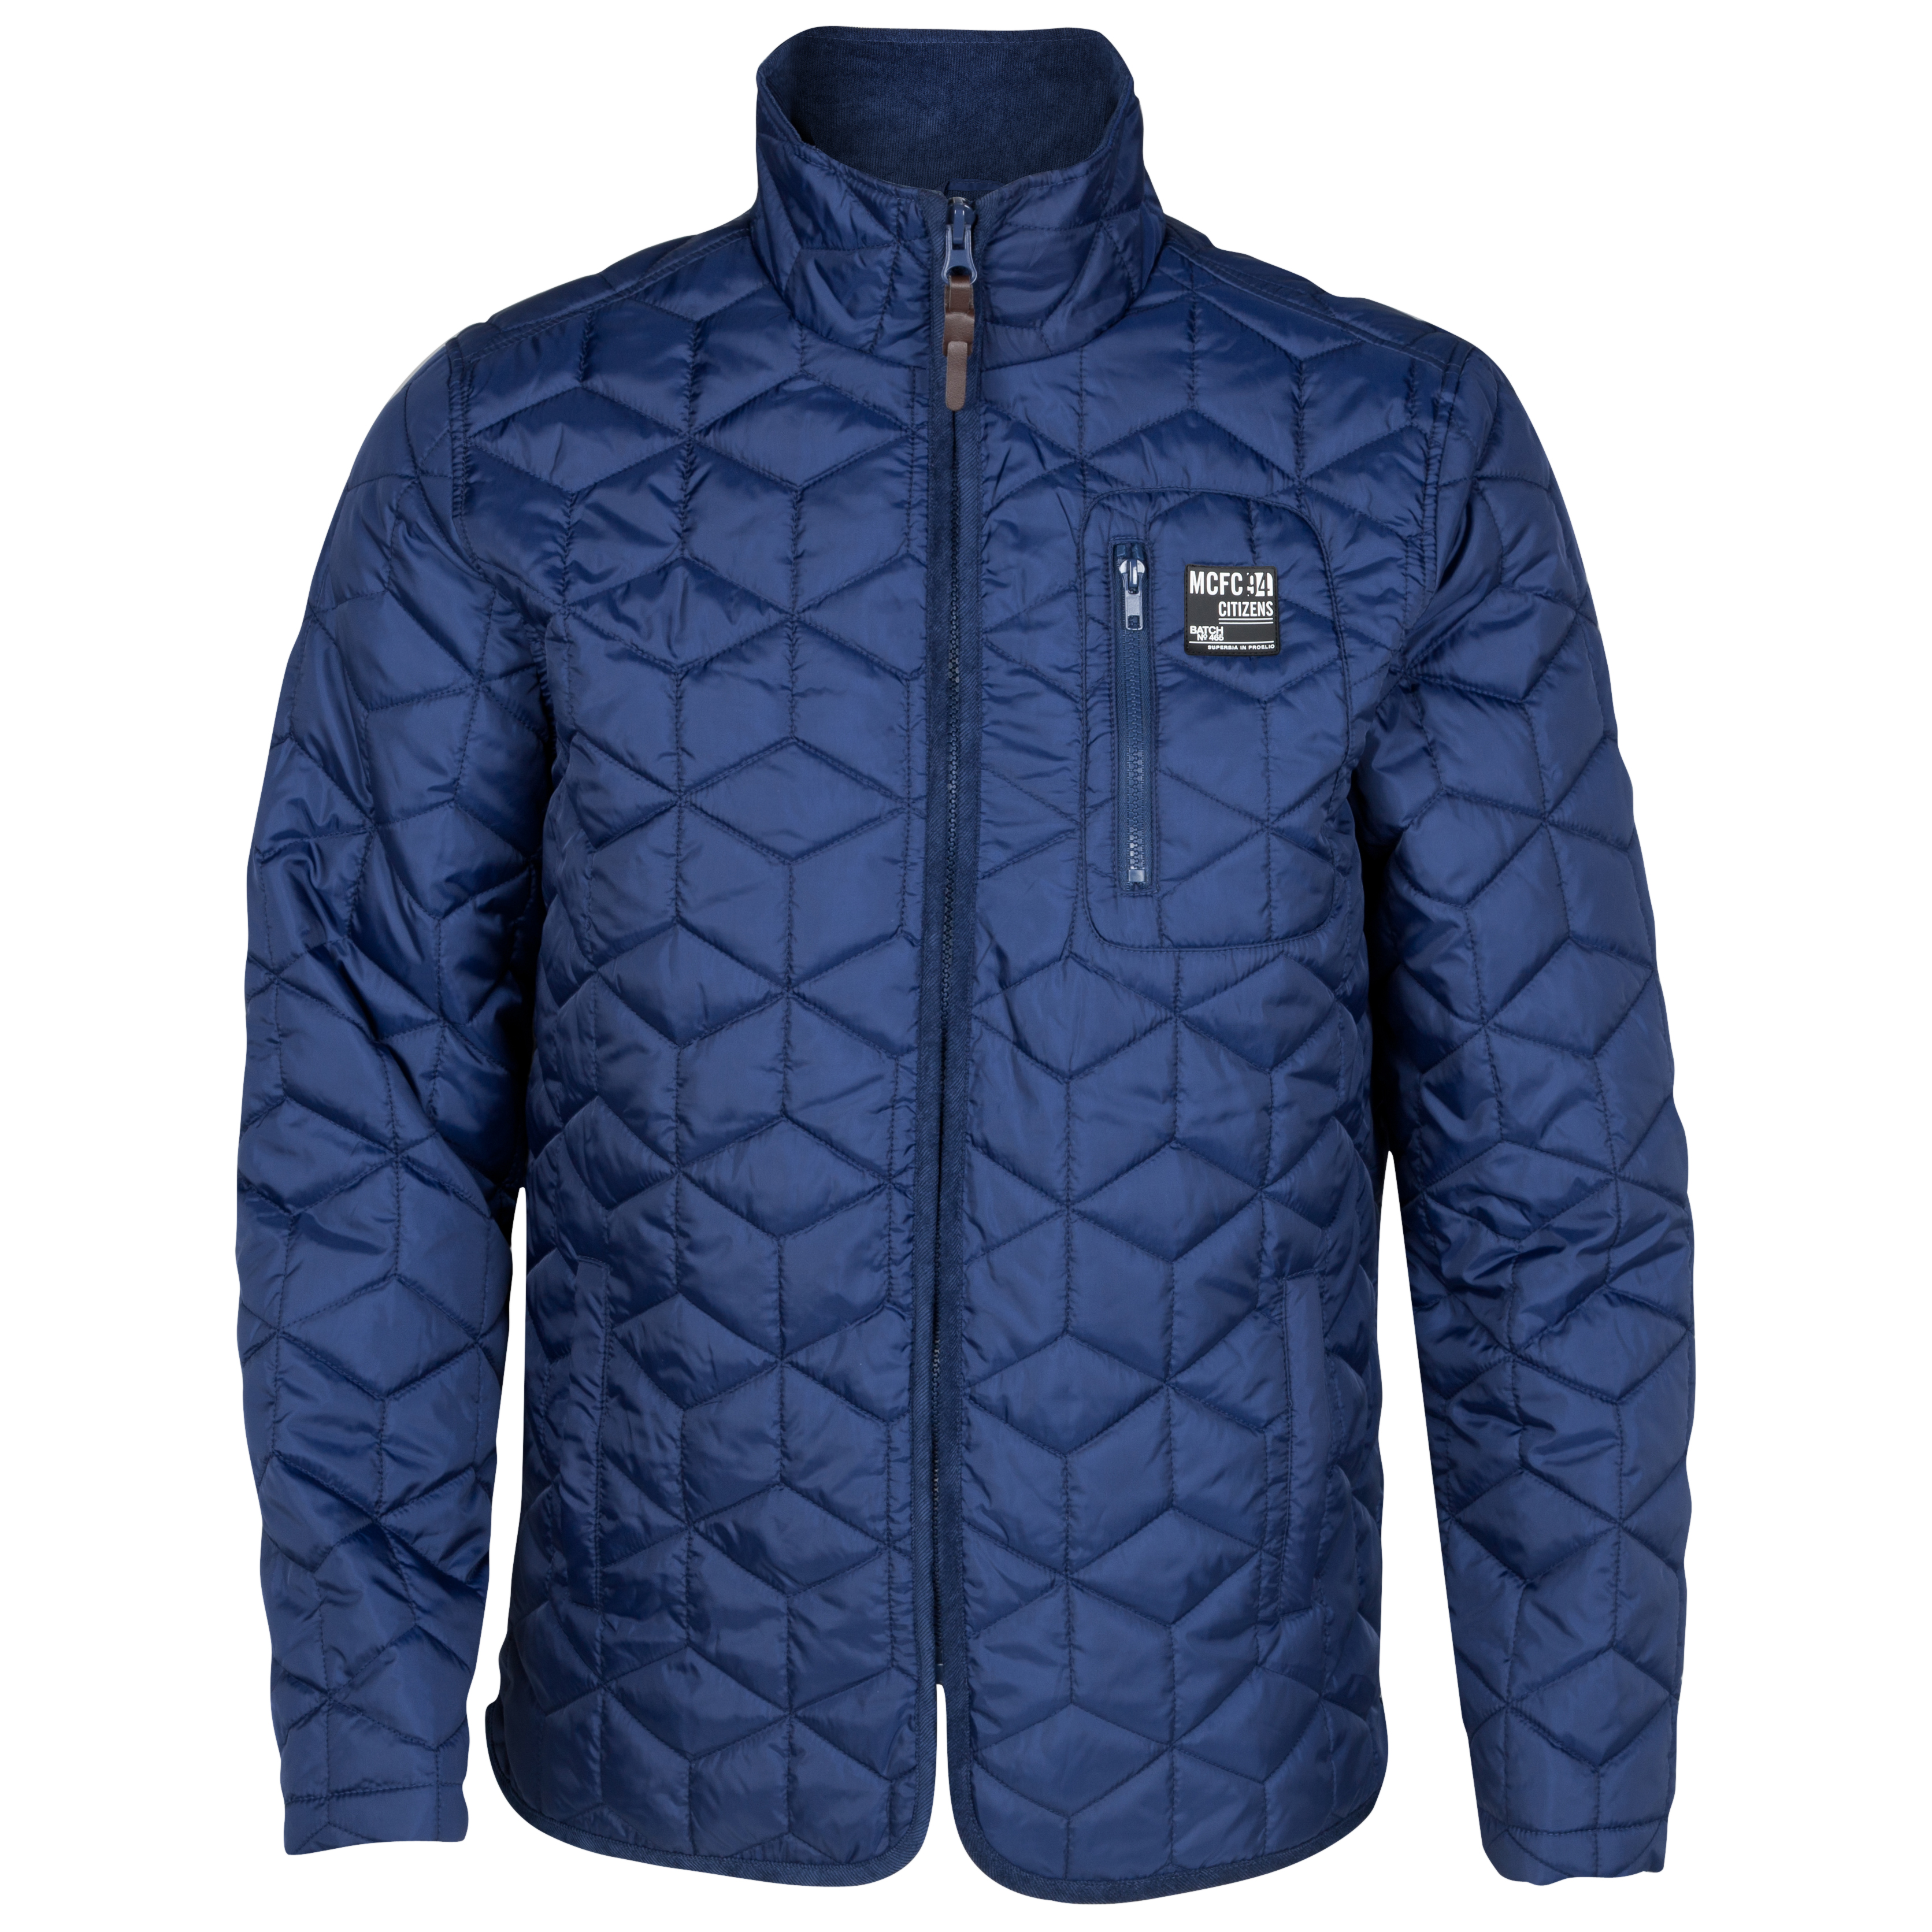 Manchester City Tesselate Jacket - Navy